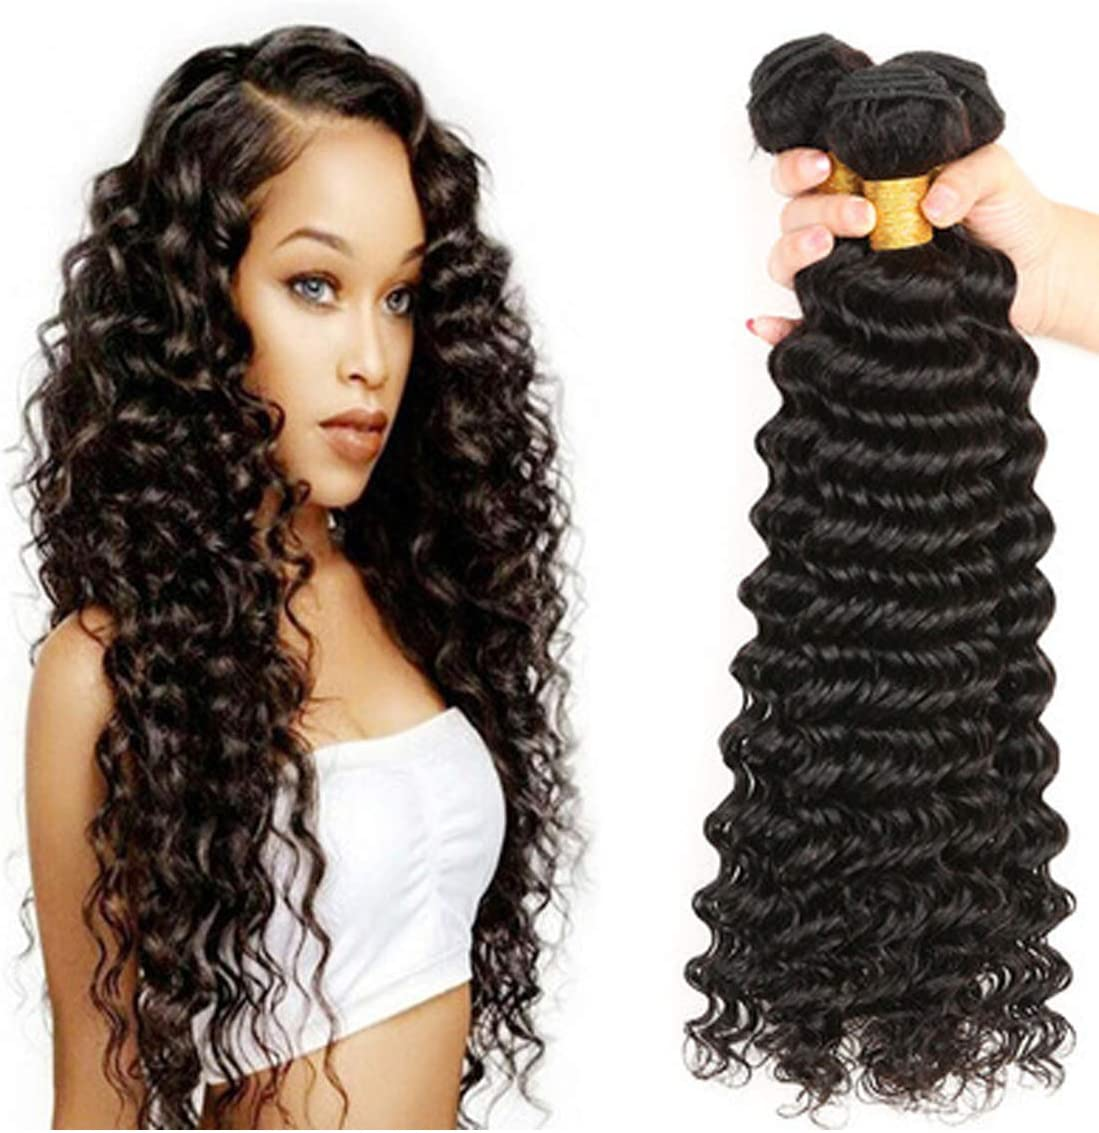 Amazon Com Tong Deep Wave Wig Brazilian Long Weaving Hair Natural Color Human Hair Extensions Remy Hair Weave Synthetic Shoulder Length Wig Middle For Cosplay And Daily Party Use Black 12inch Home Kitchen